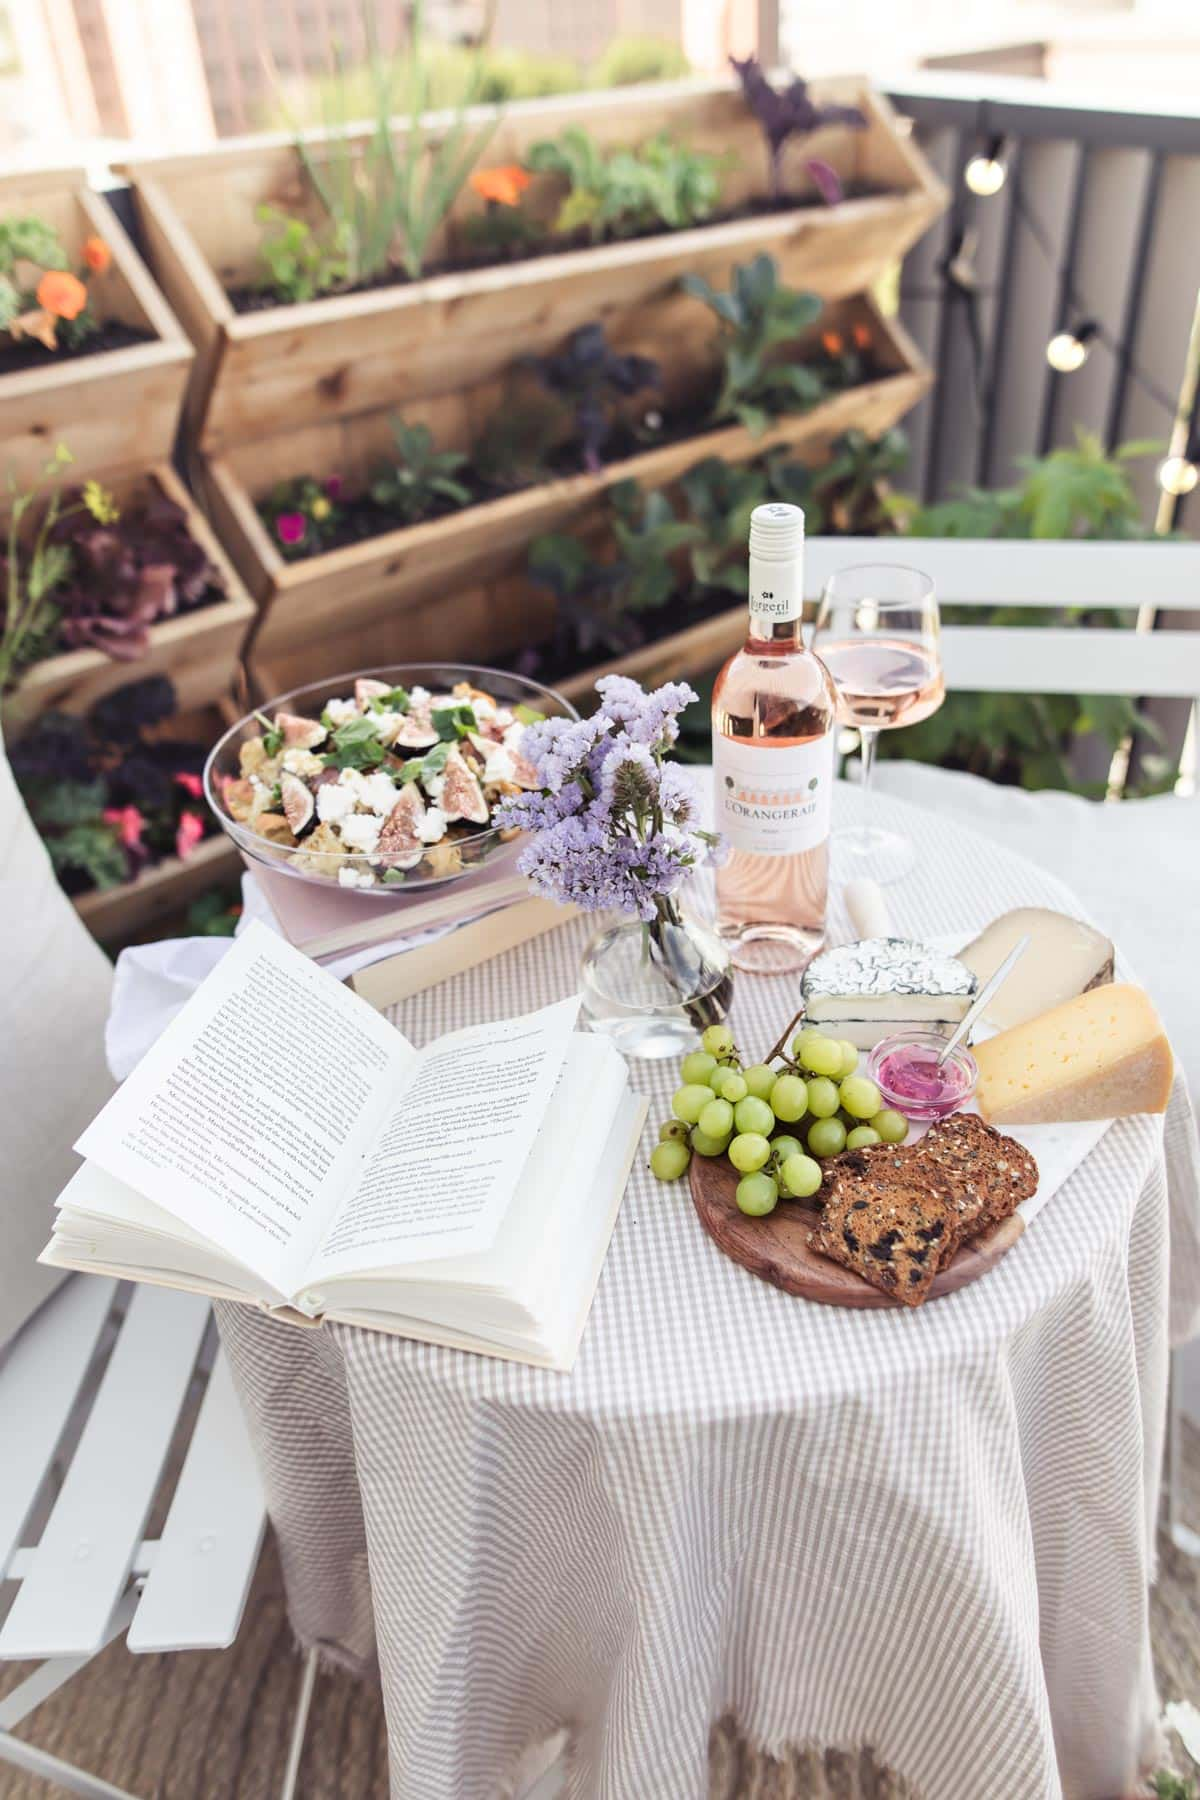 Bistro table with book, flowers, cheeseboard, rose wine and vertical planter in the background.